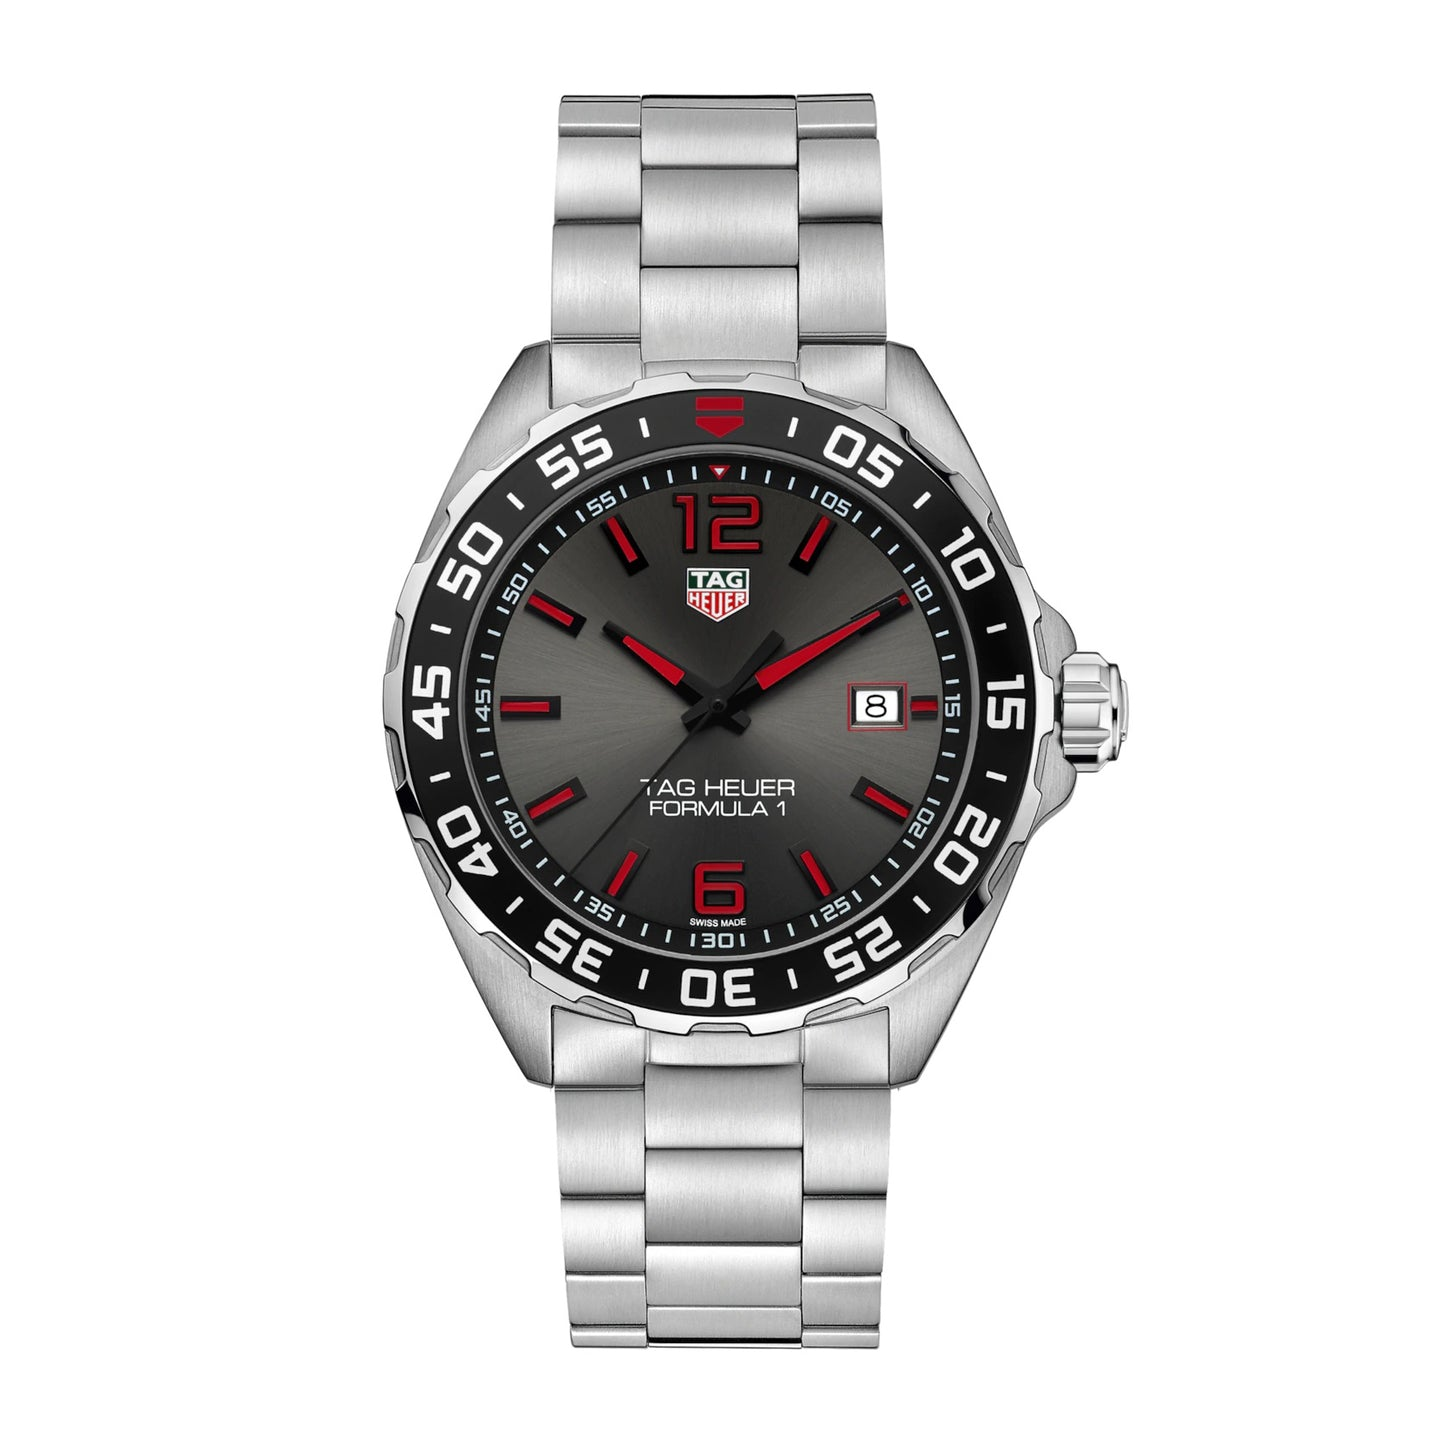 TAG Heuer Formula 1 Men's Quartz Movement Grey Dial Watch with Red and Black Accents